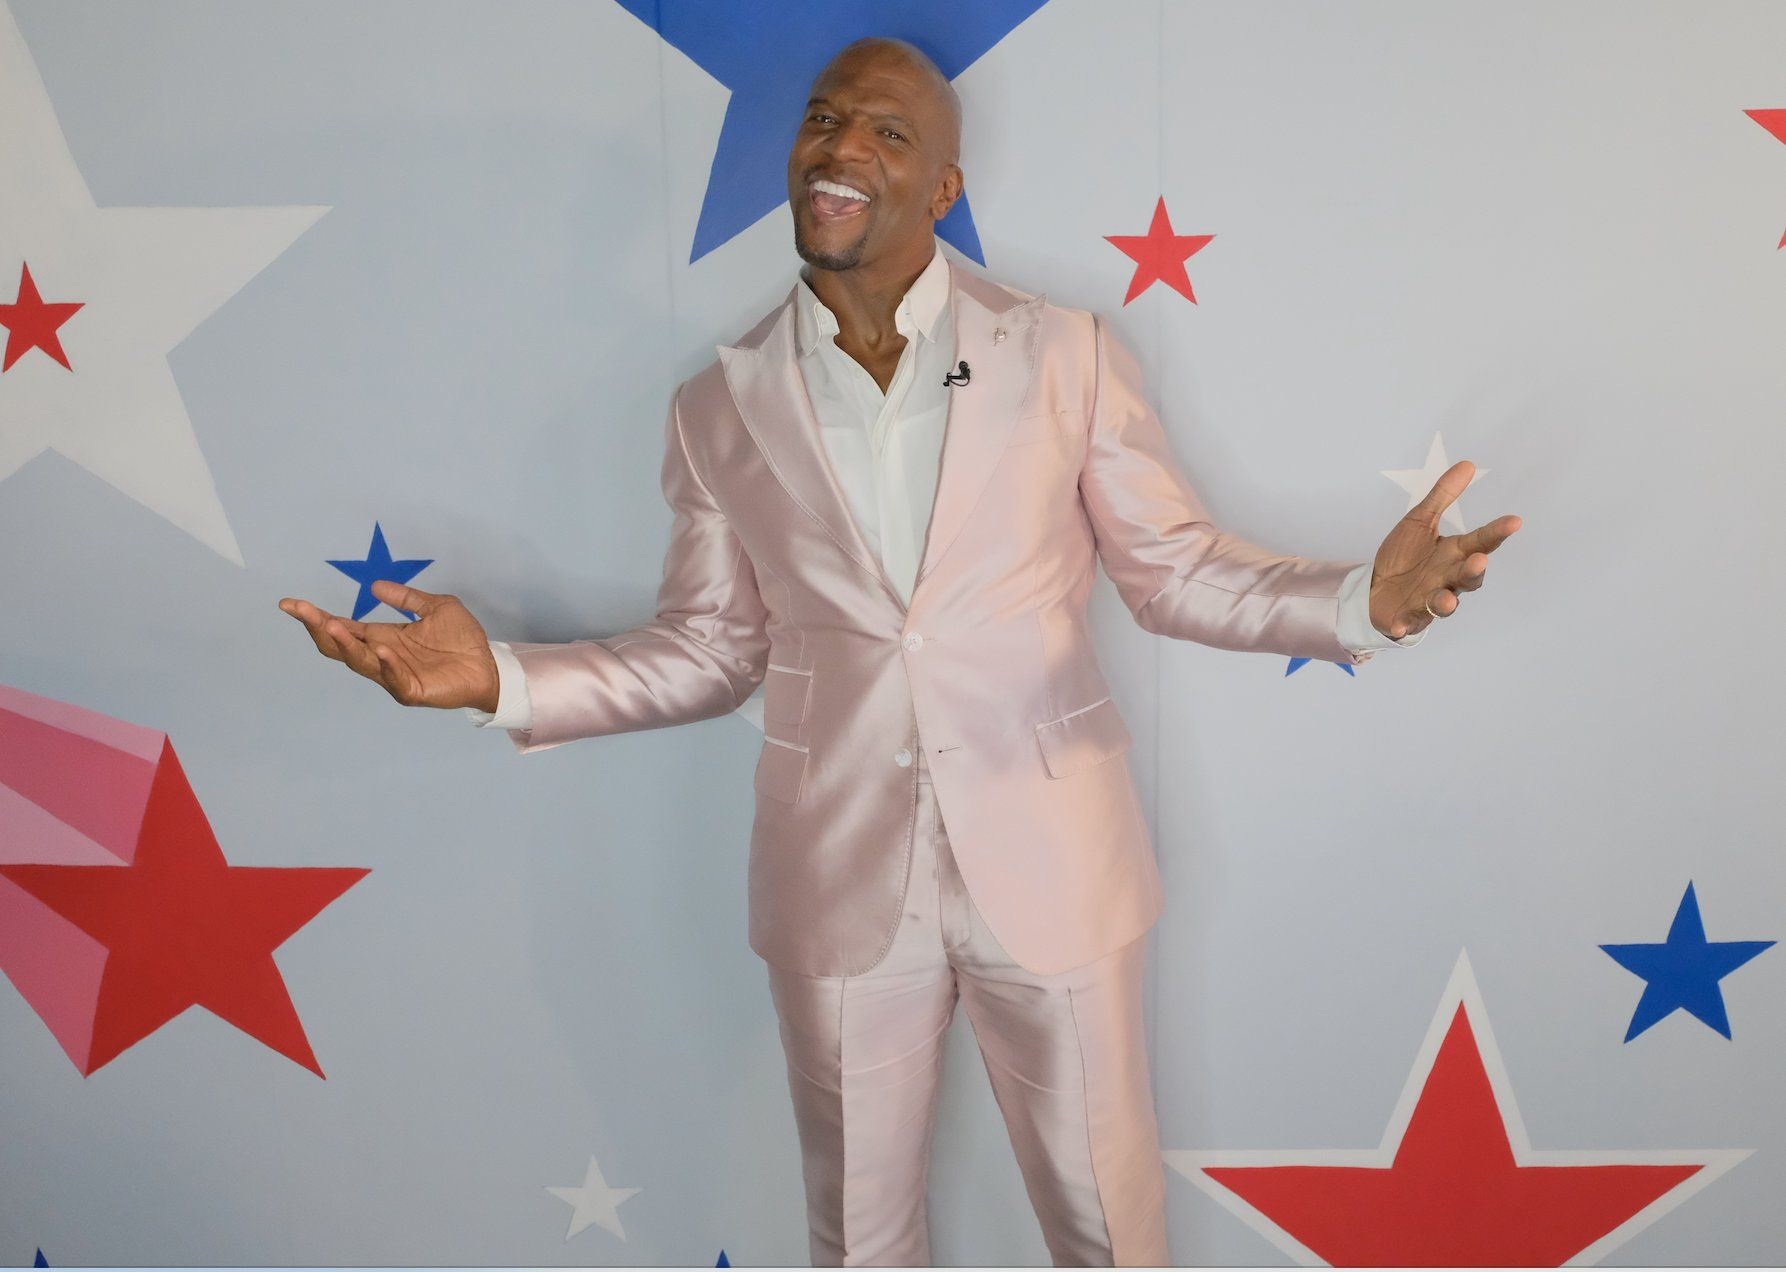 An amazing photo showing jolly Terry Crews in a pink two-piece suit and white T-shirt.